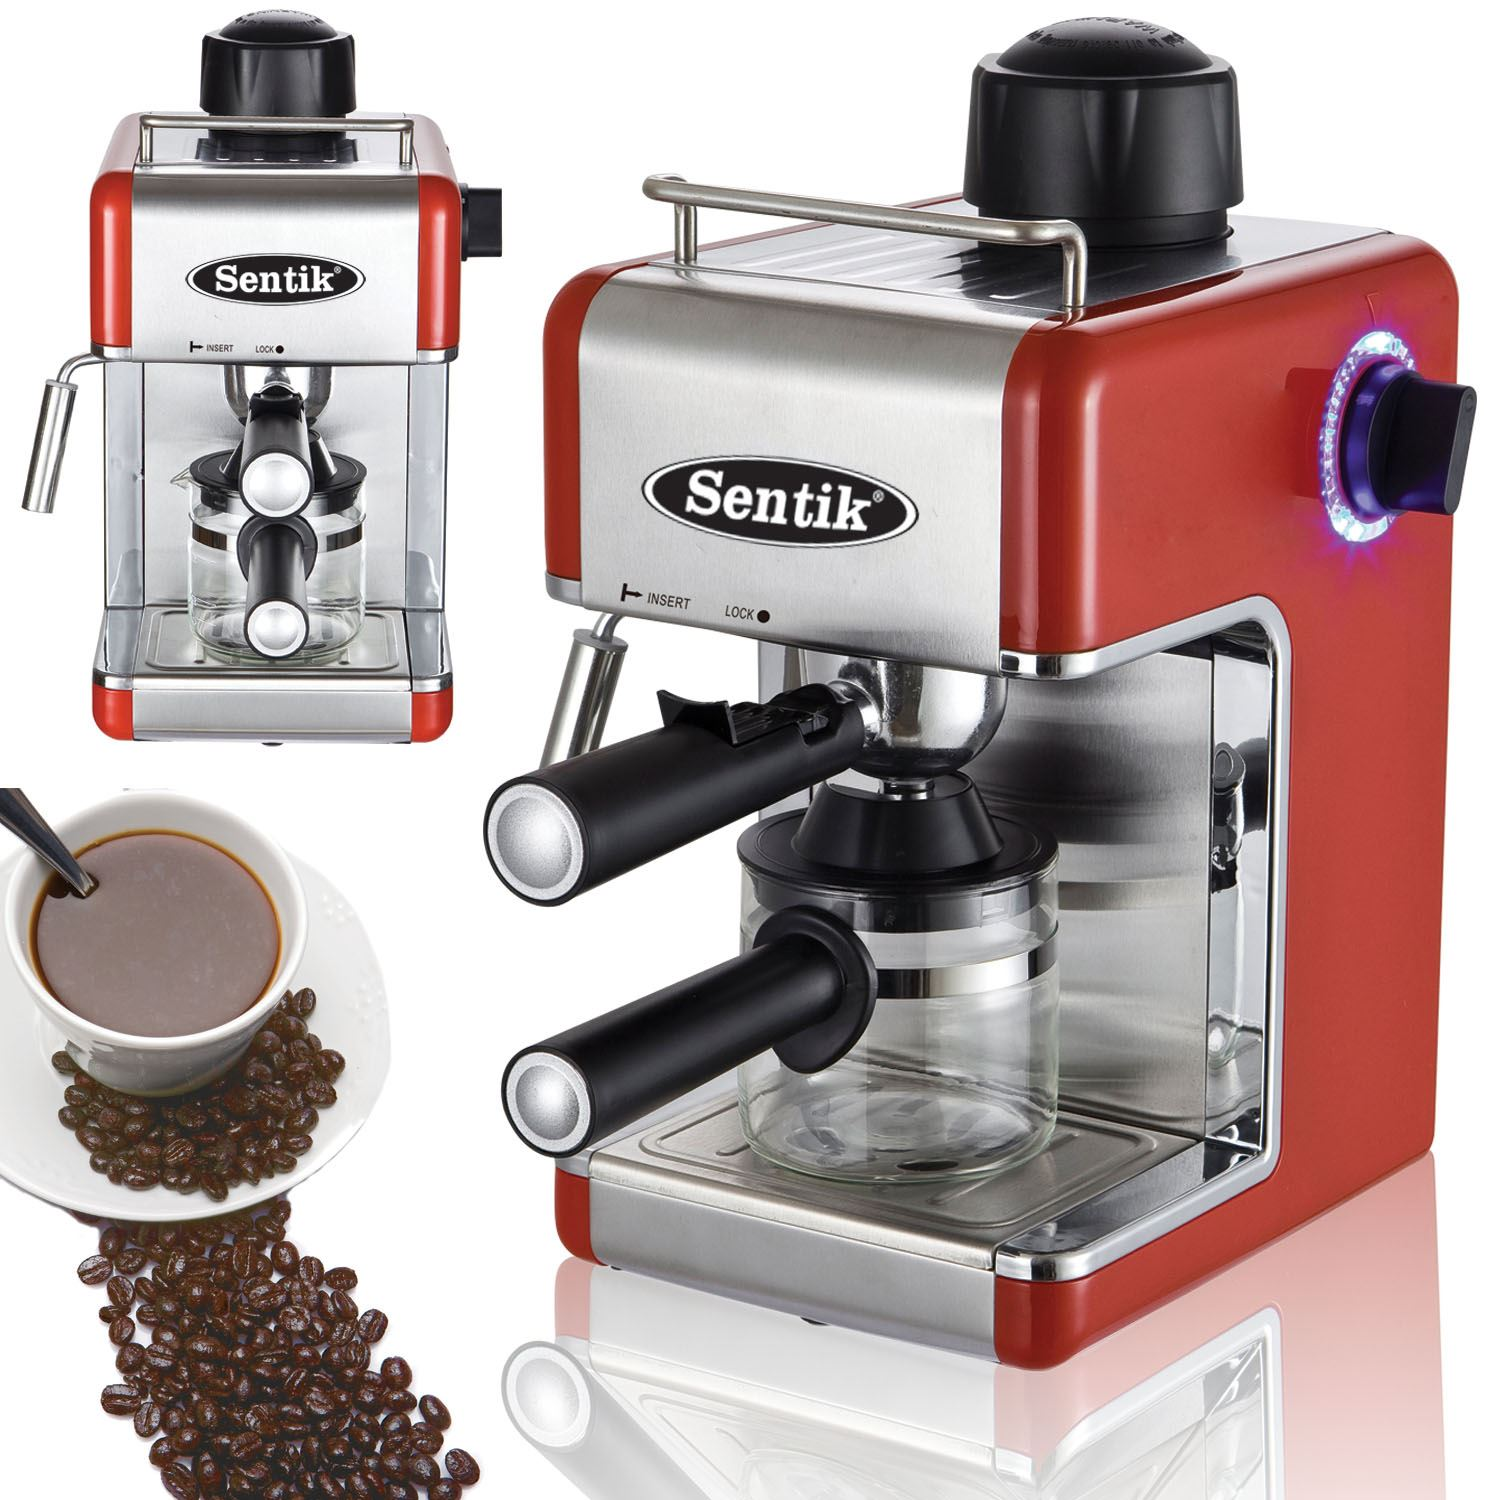 Sentik Espresso Cappuccino Latte Coffee Maker Machine Home